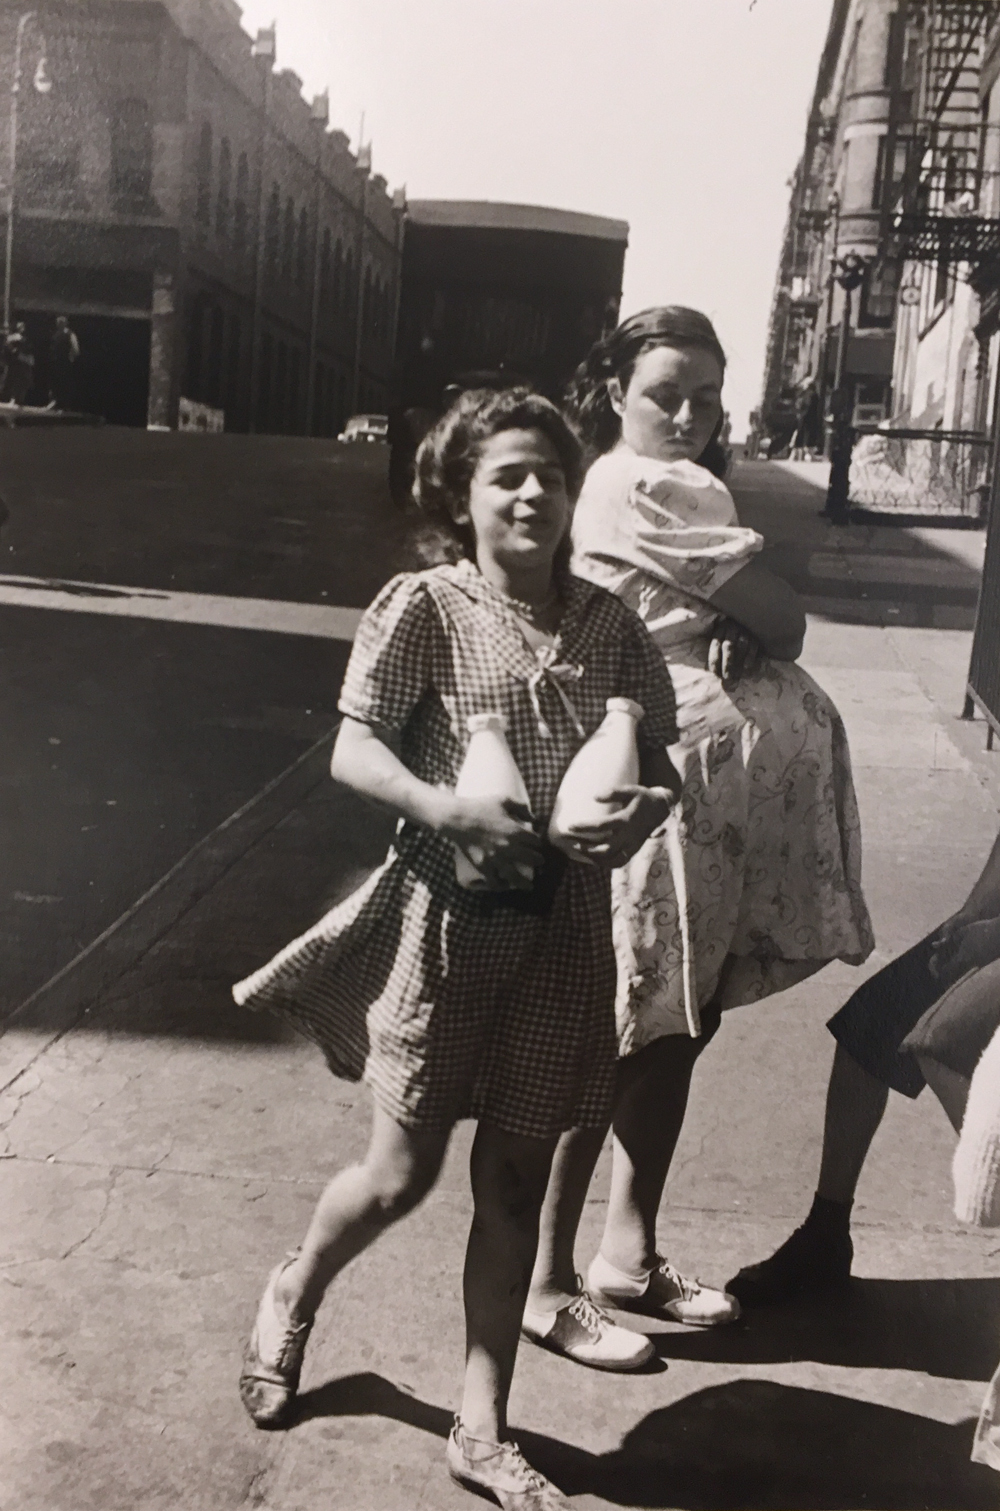 Helen Levitt, Untitled, 1945 (Girl with milk bottles), gelatin silver print, 14 x 11 inches, signed by artist, verso, price on request